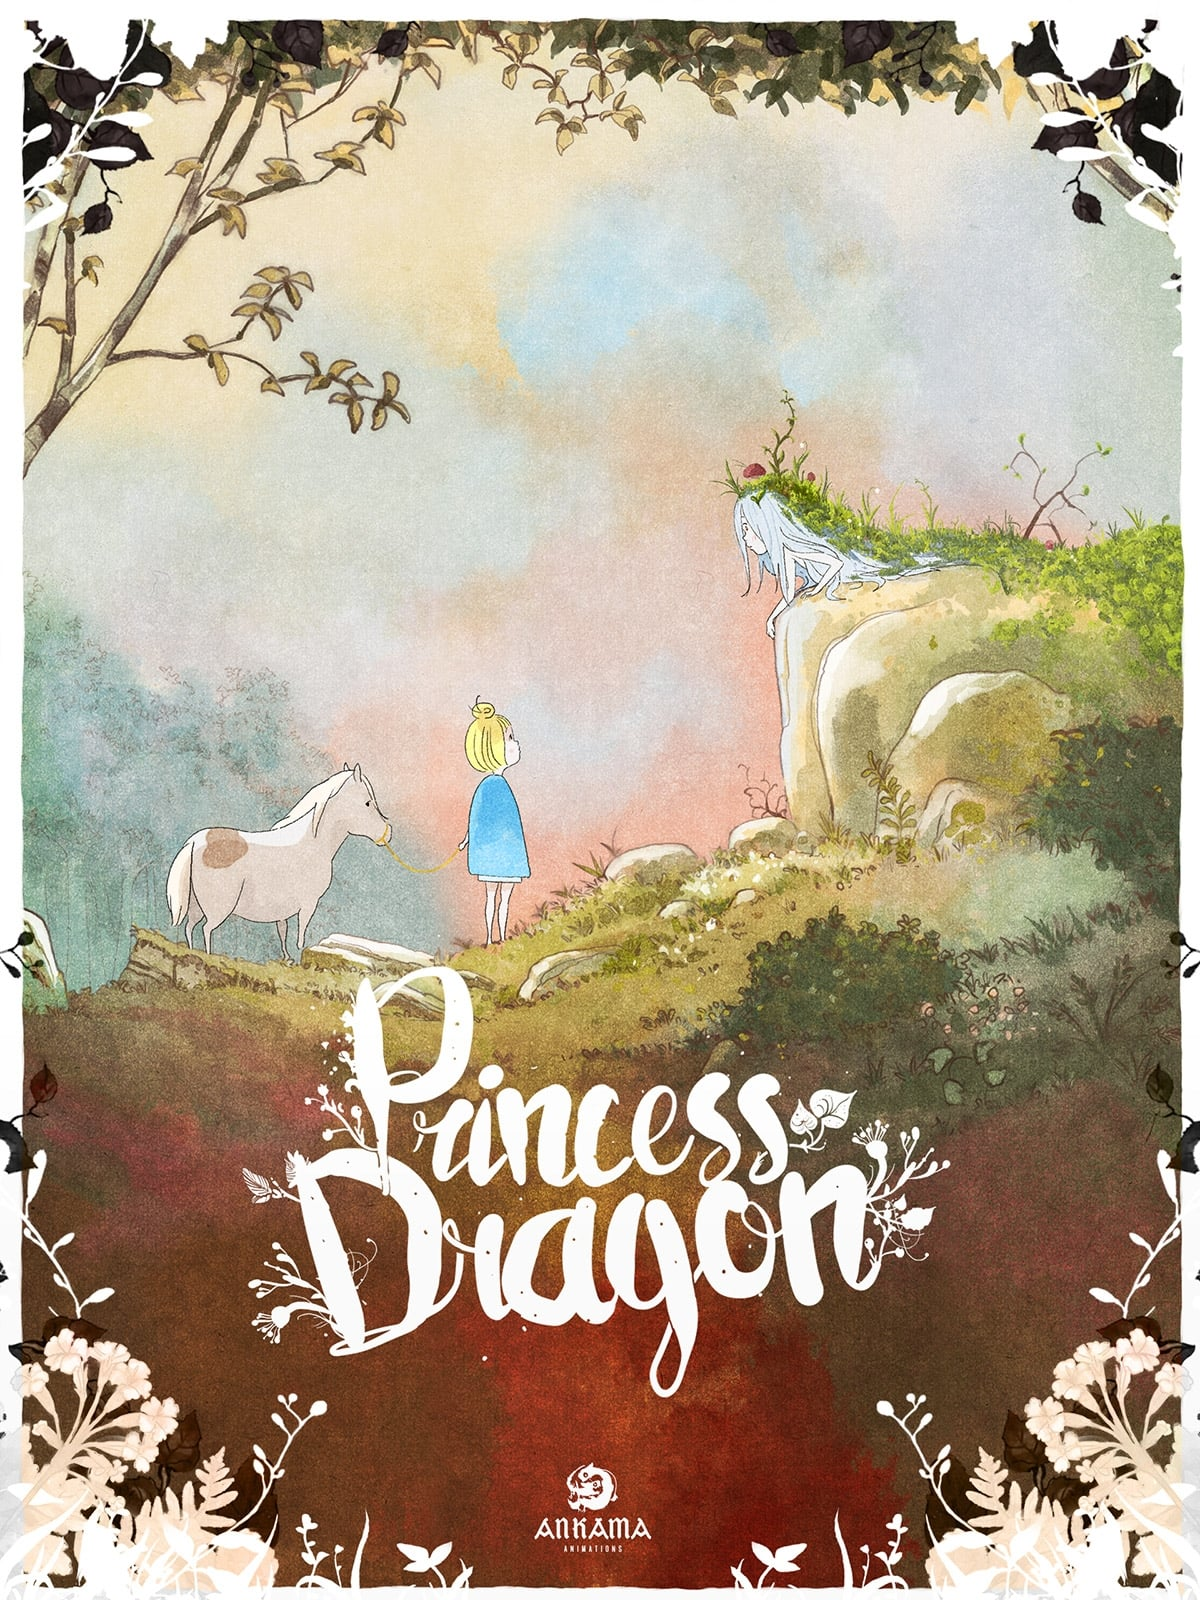 Princess Dragon (1970)